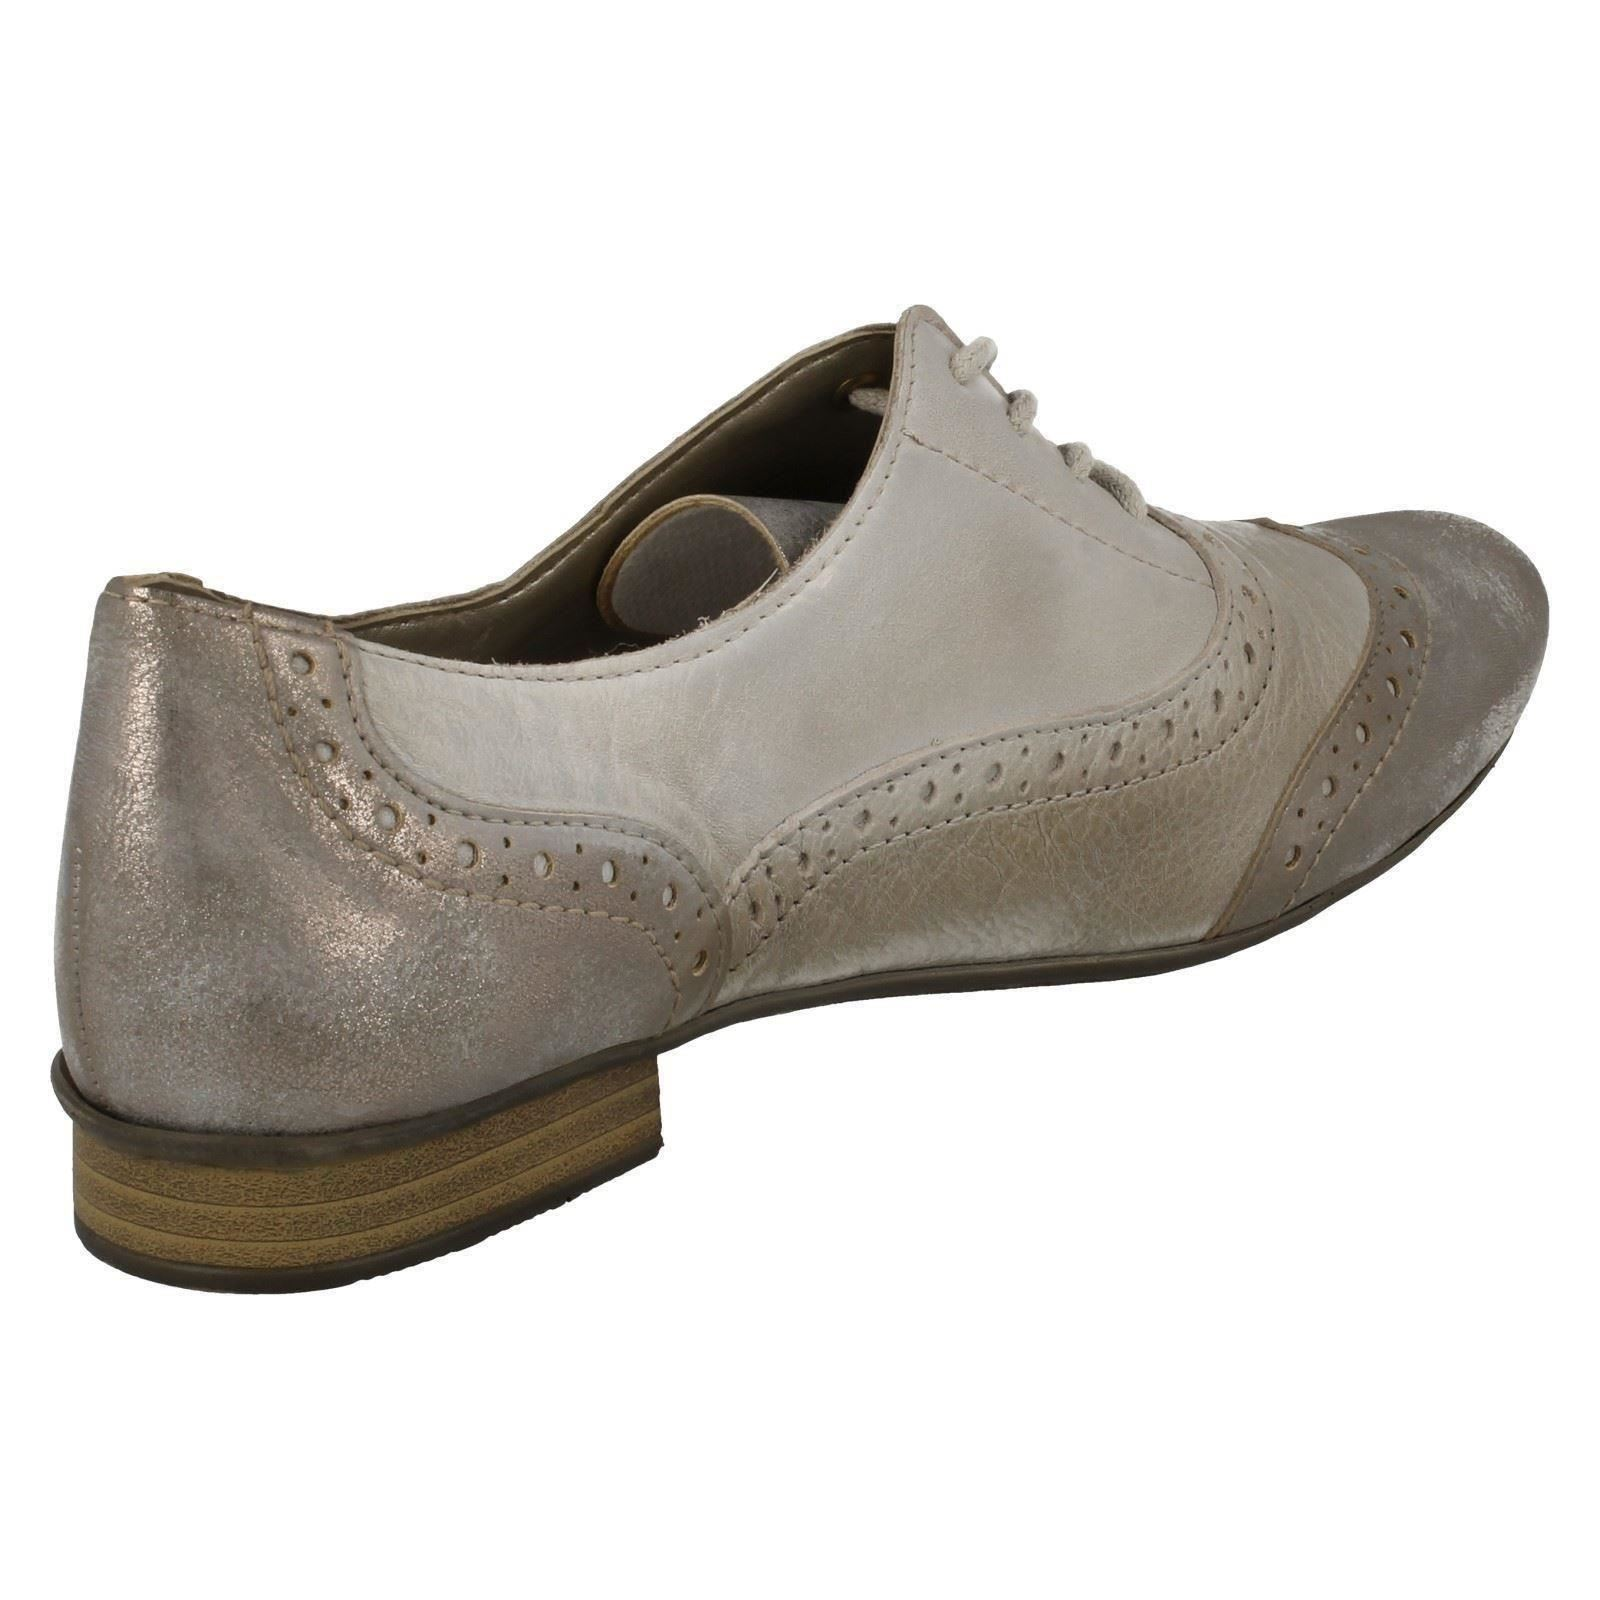 Ladies Rieker Casual Lace Up Brogue shoes 51933 51933 51933 b82bba